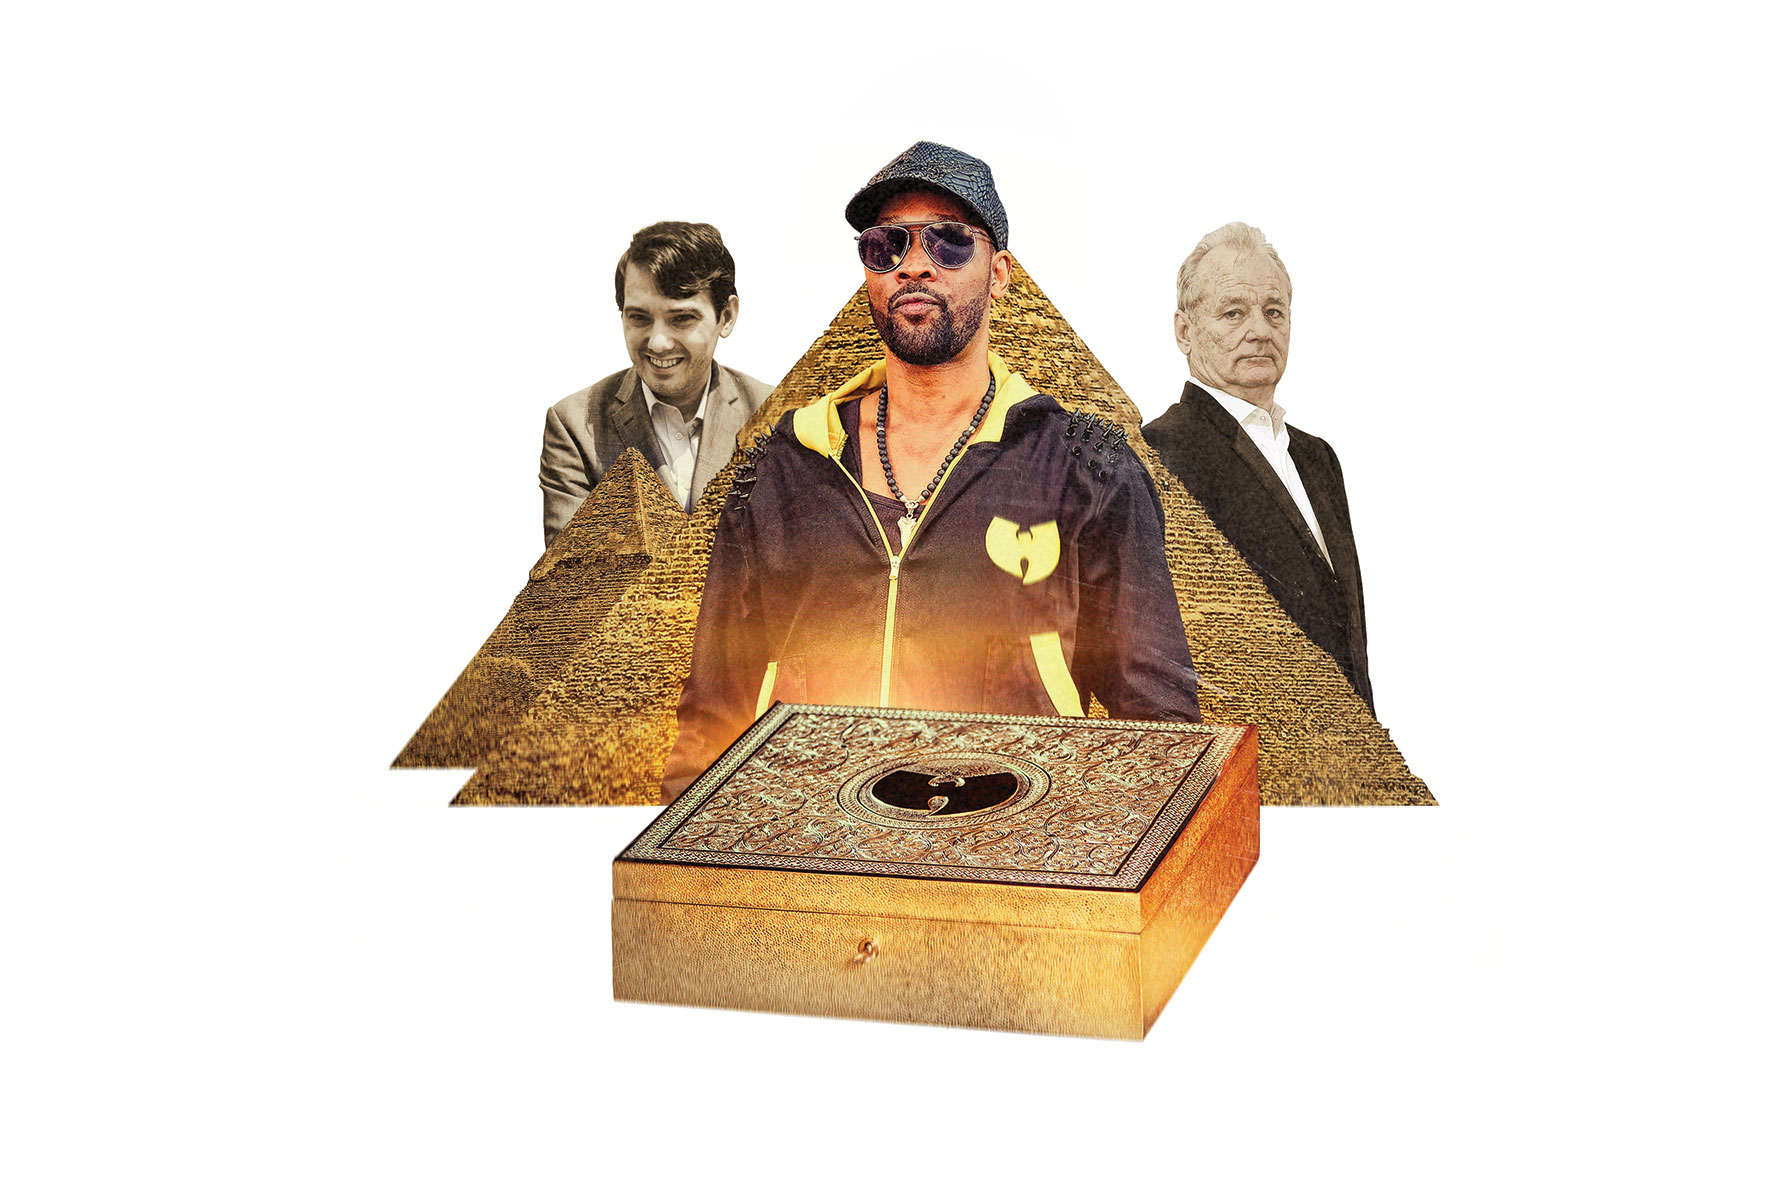 The Story Behind Martin Shkreli and That Wu-Tang Album